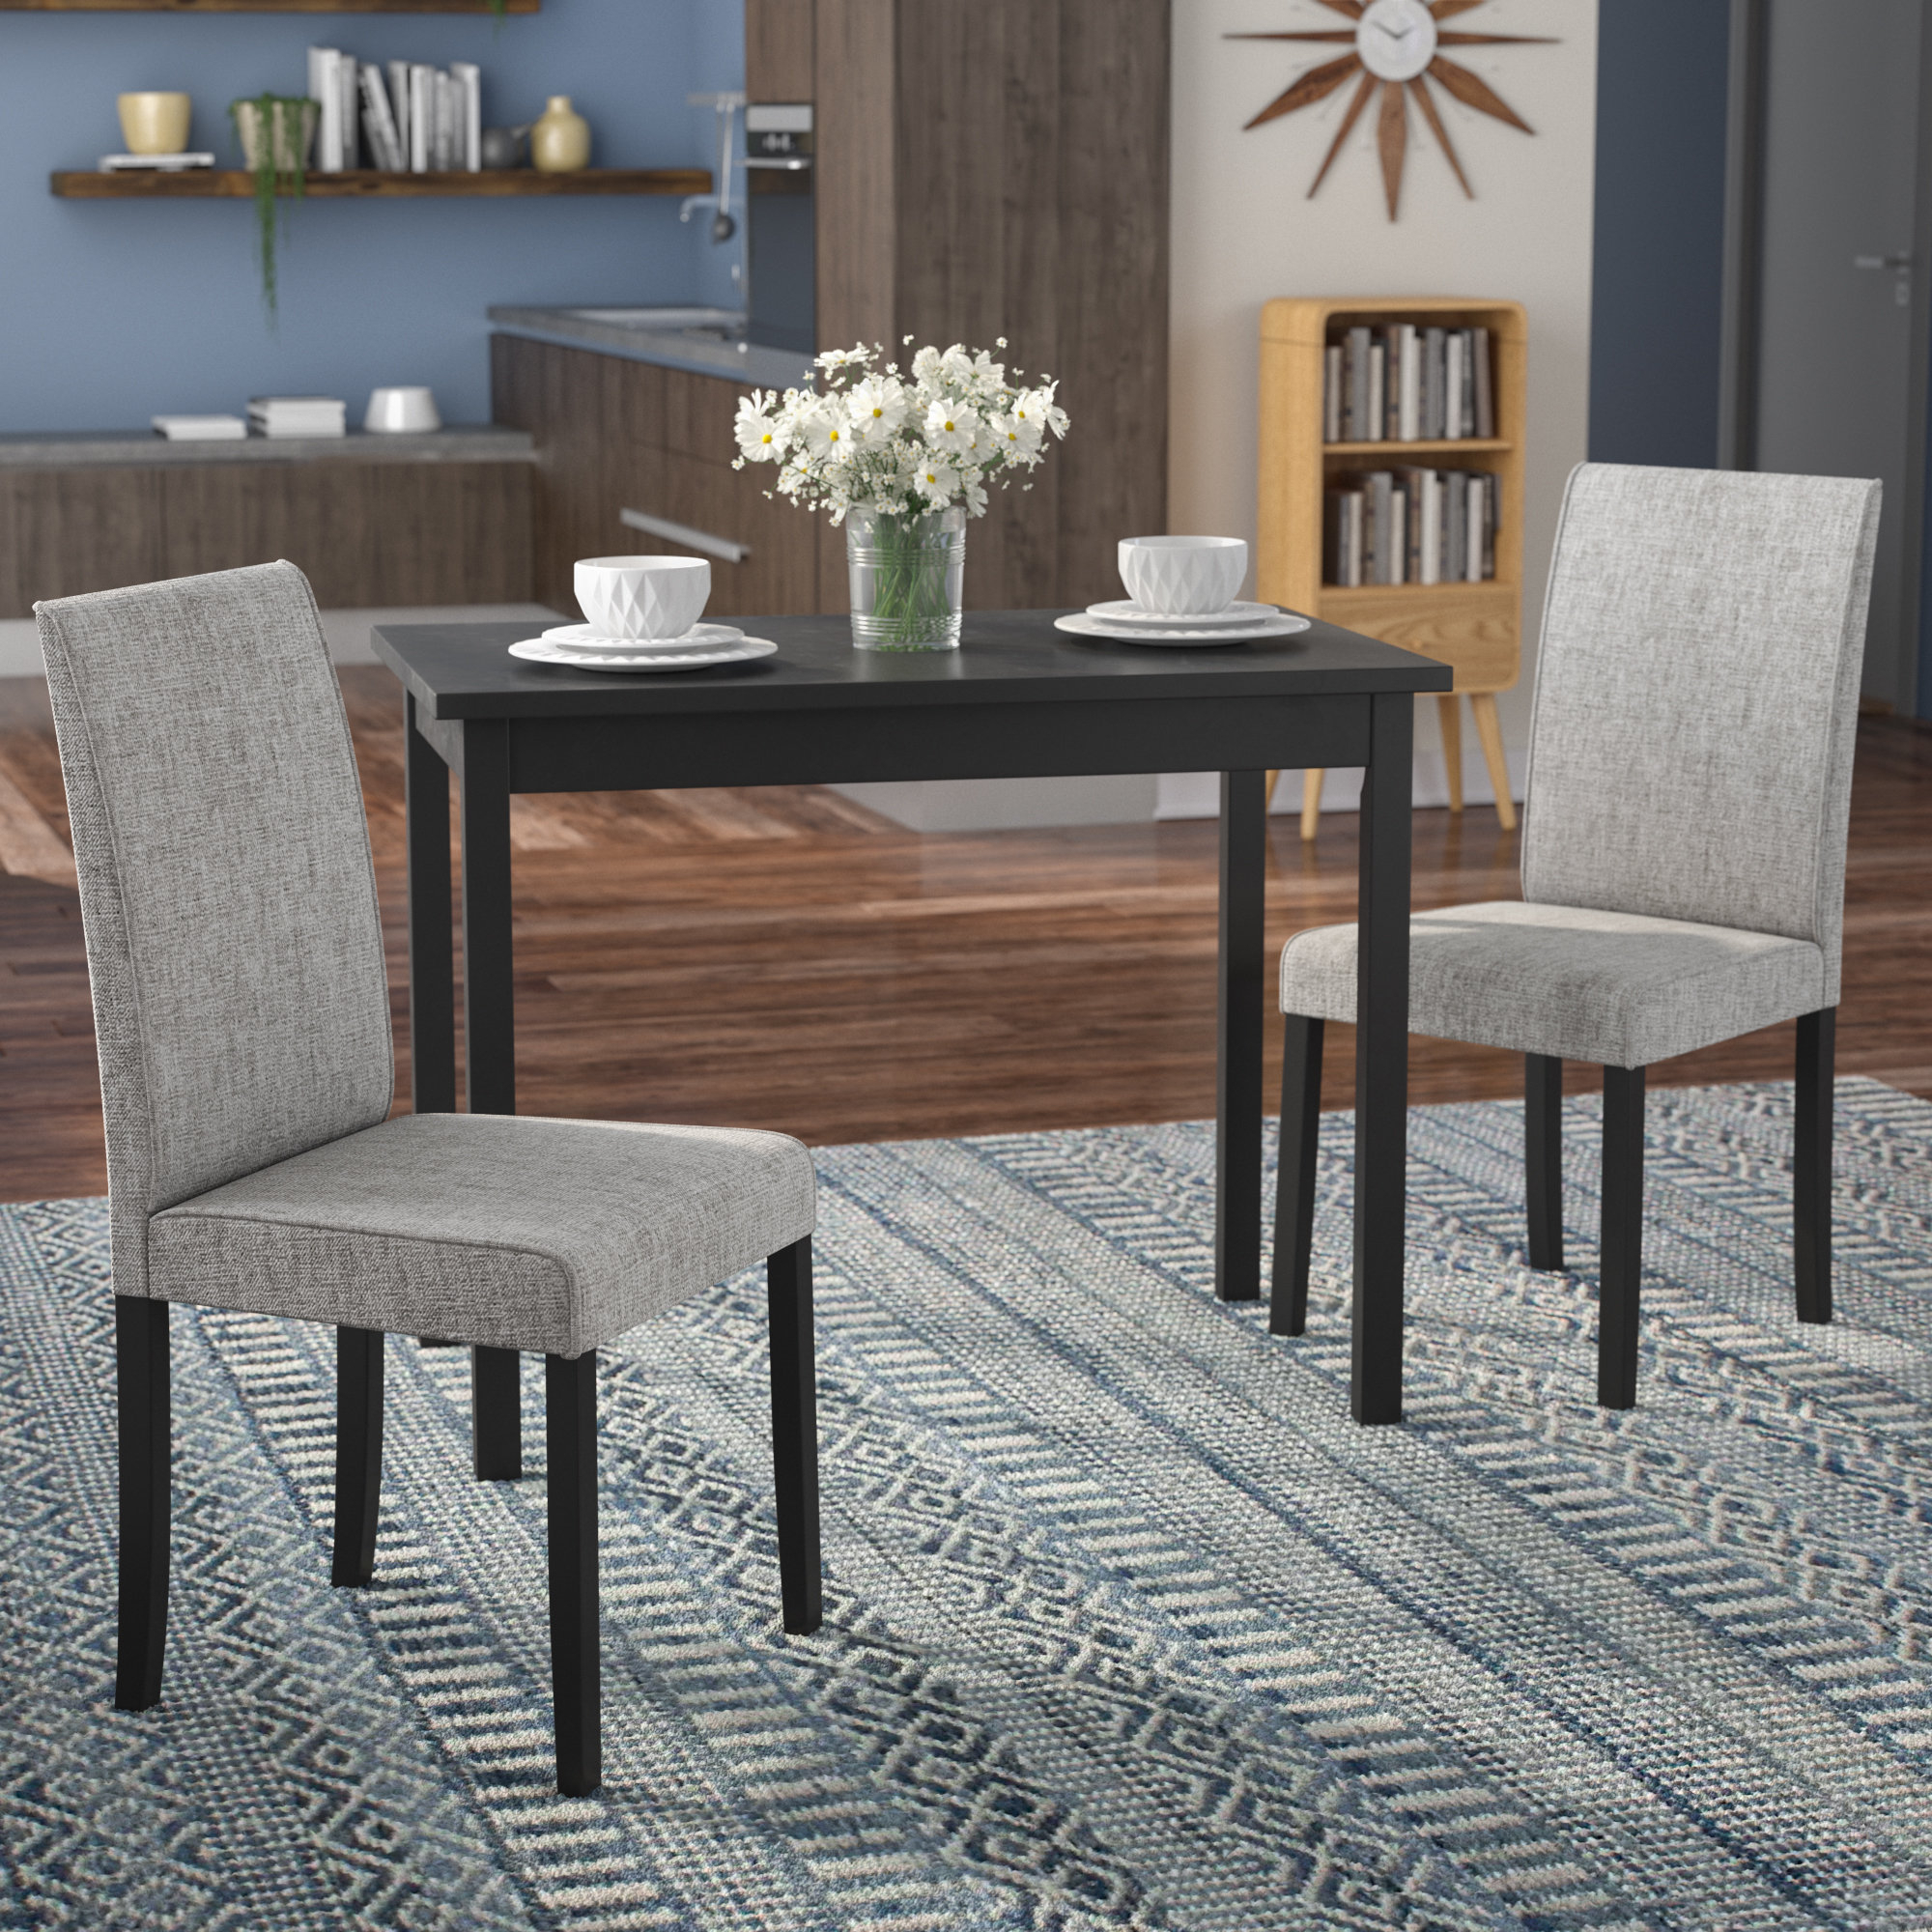 Latest Darvell 3 Piece Dining Set Pertaining To 3 Piece Dining Sets (View 14 of 20)